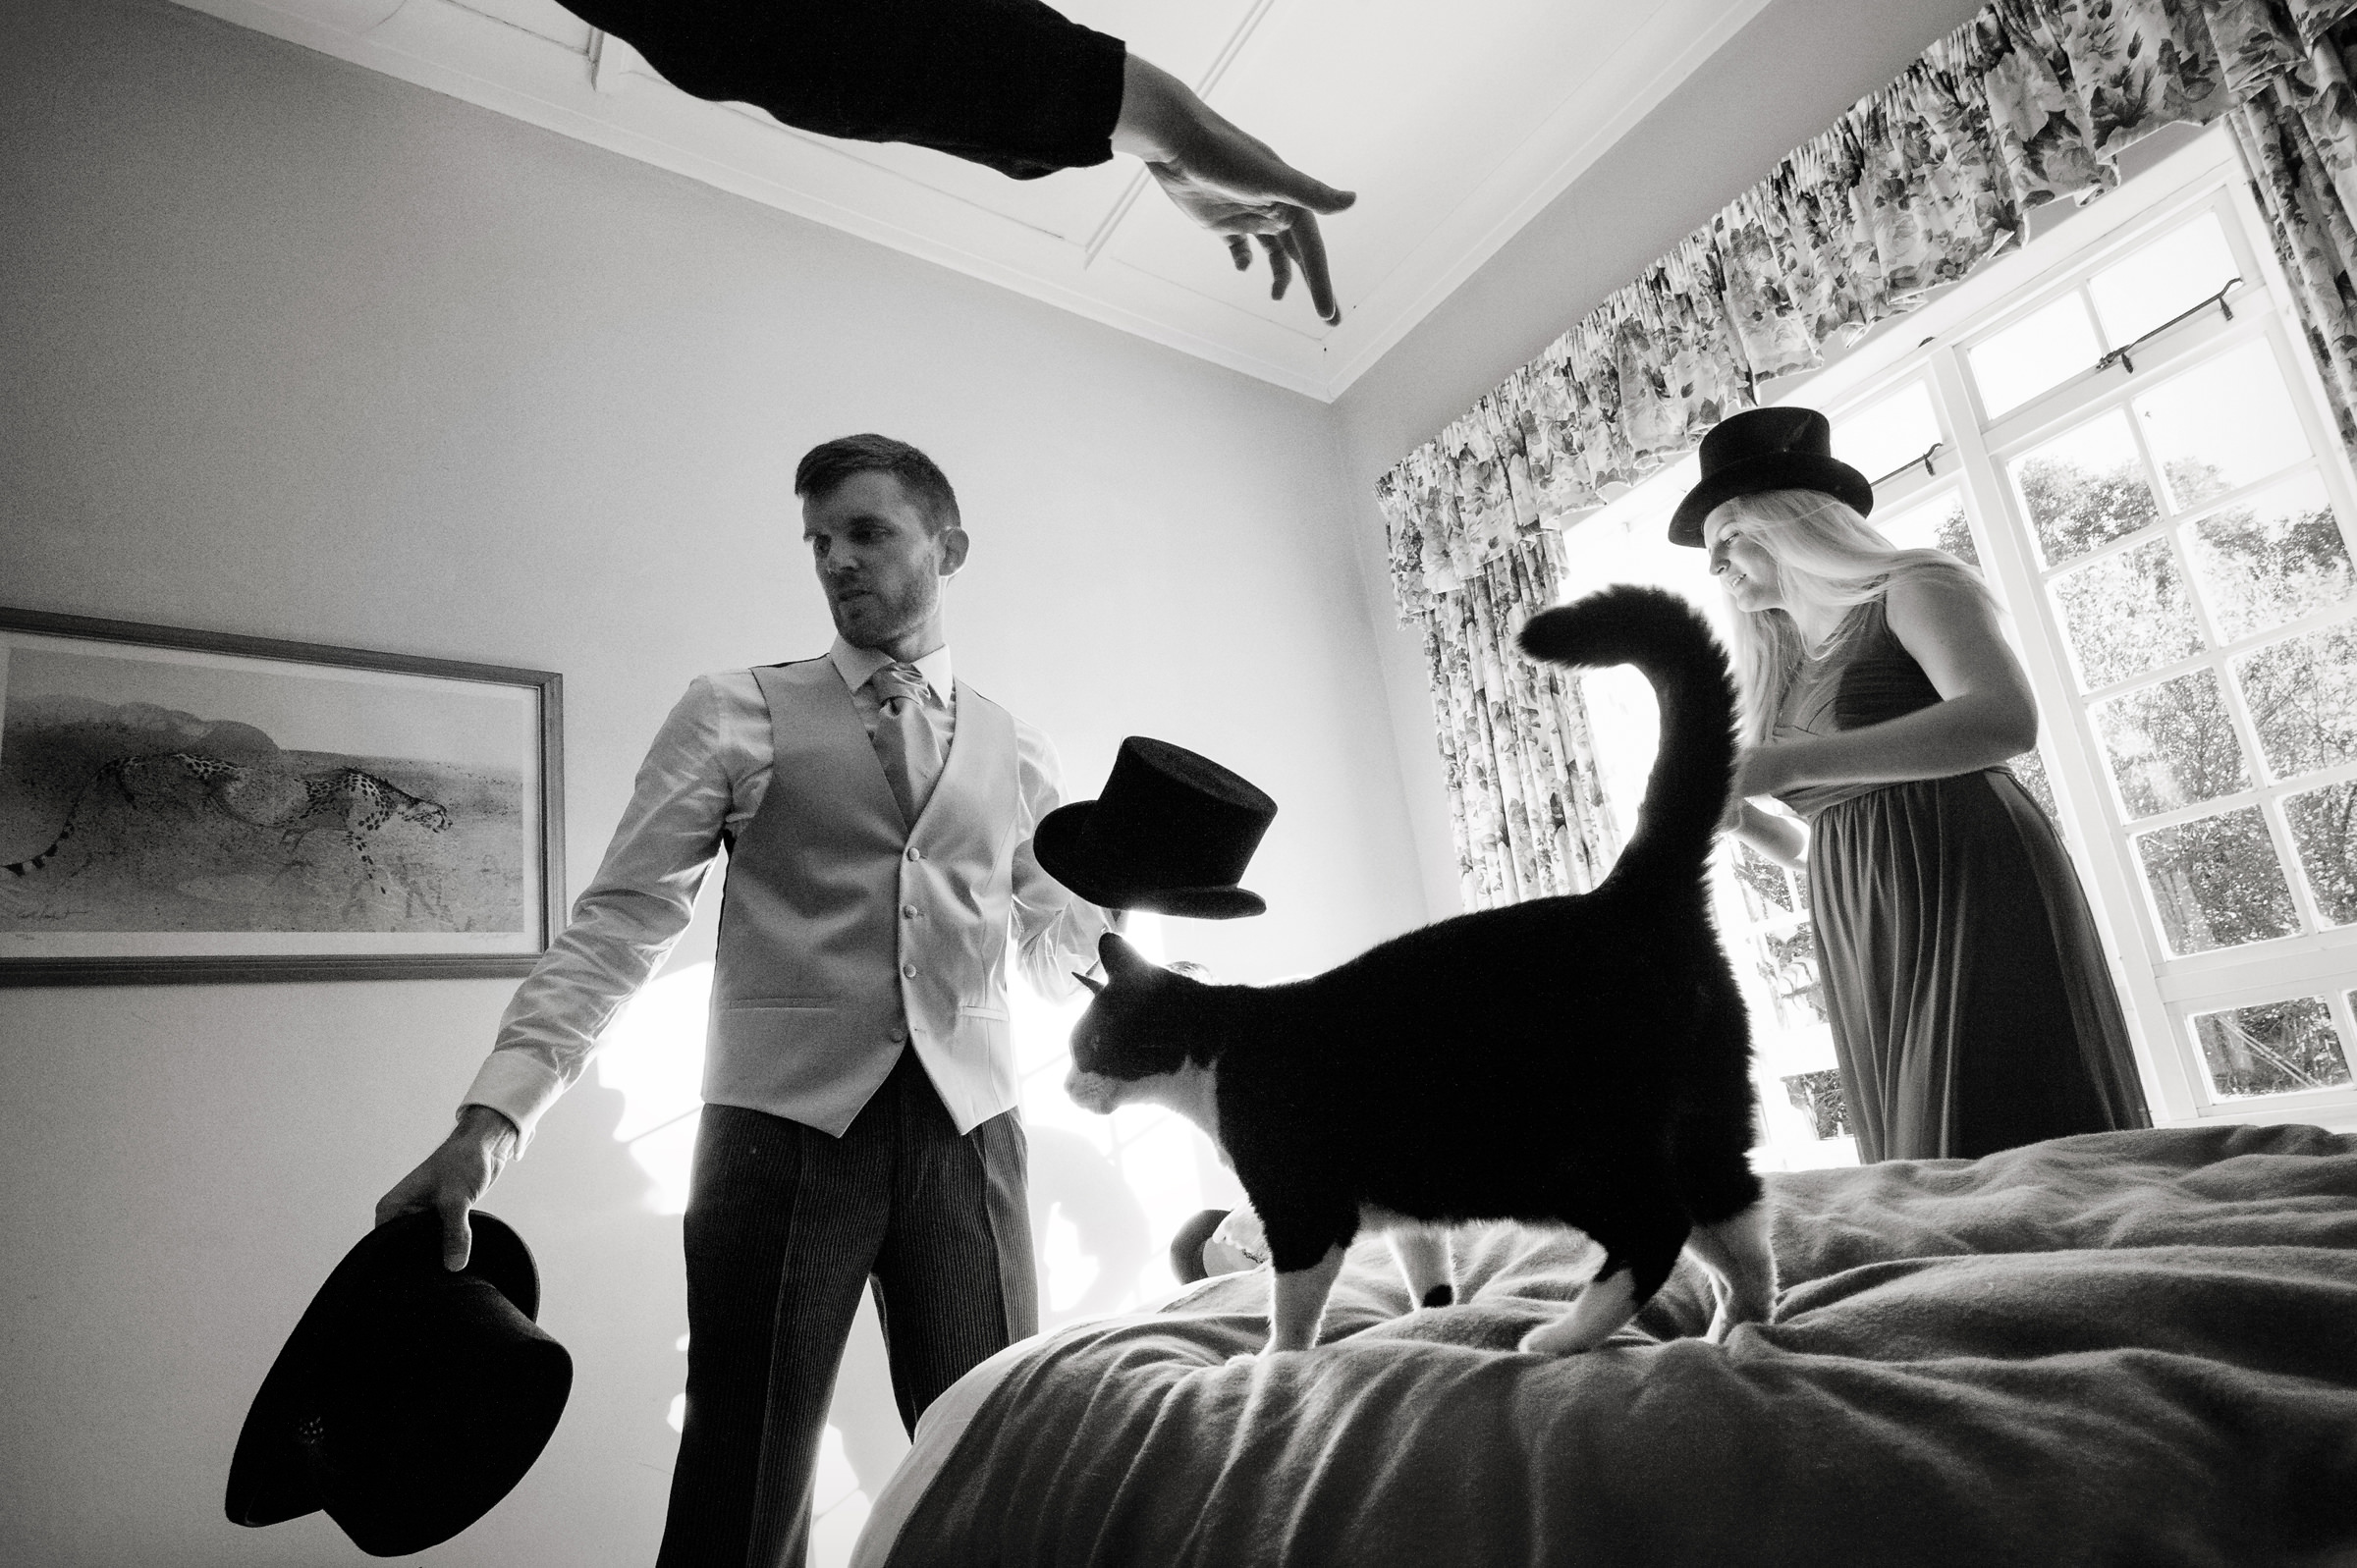 Man appears to throw Top Hat on cat - photo by Jacki Bruniquel